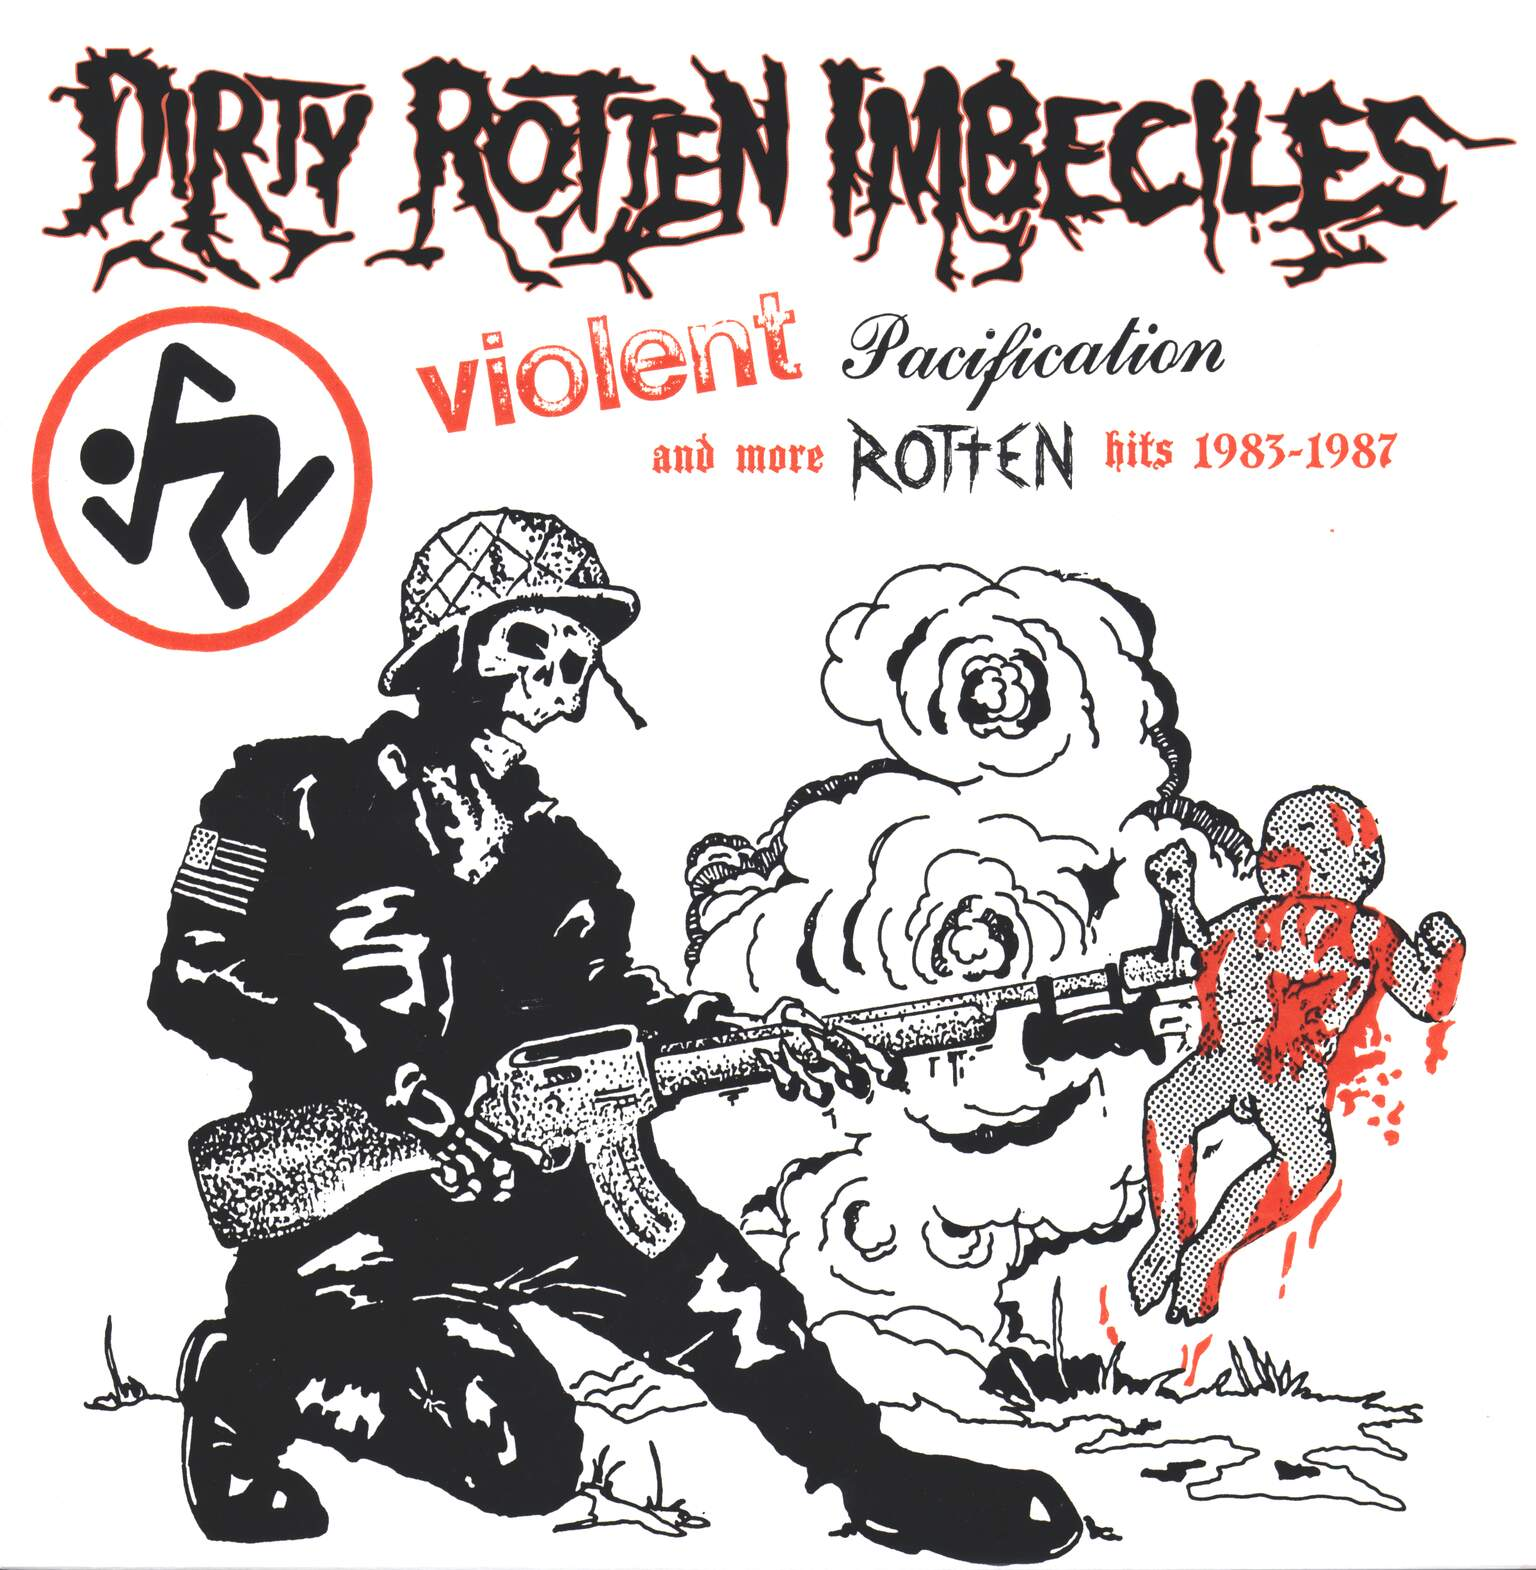 Dirty Rotten Imbeciles: Violent Pacification And More Rotten Hits 1983-1987, 1×LP (Vinyl)